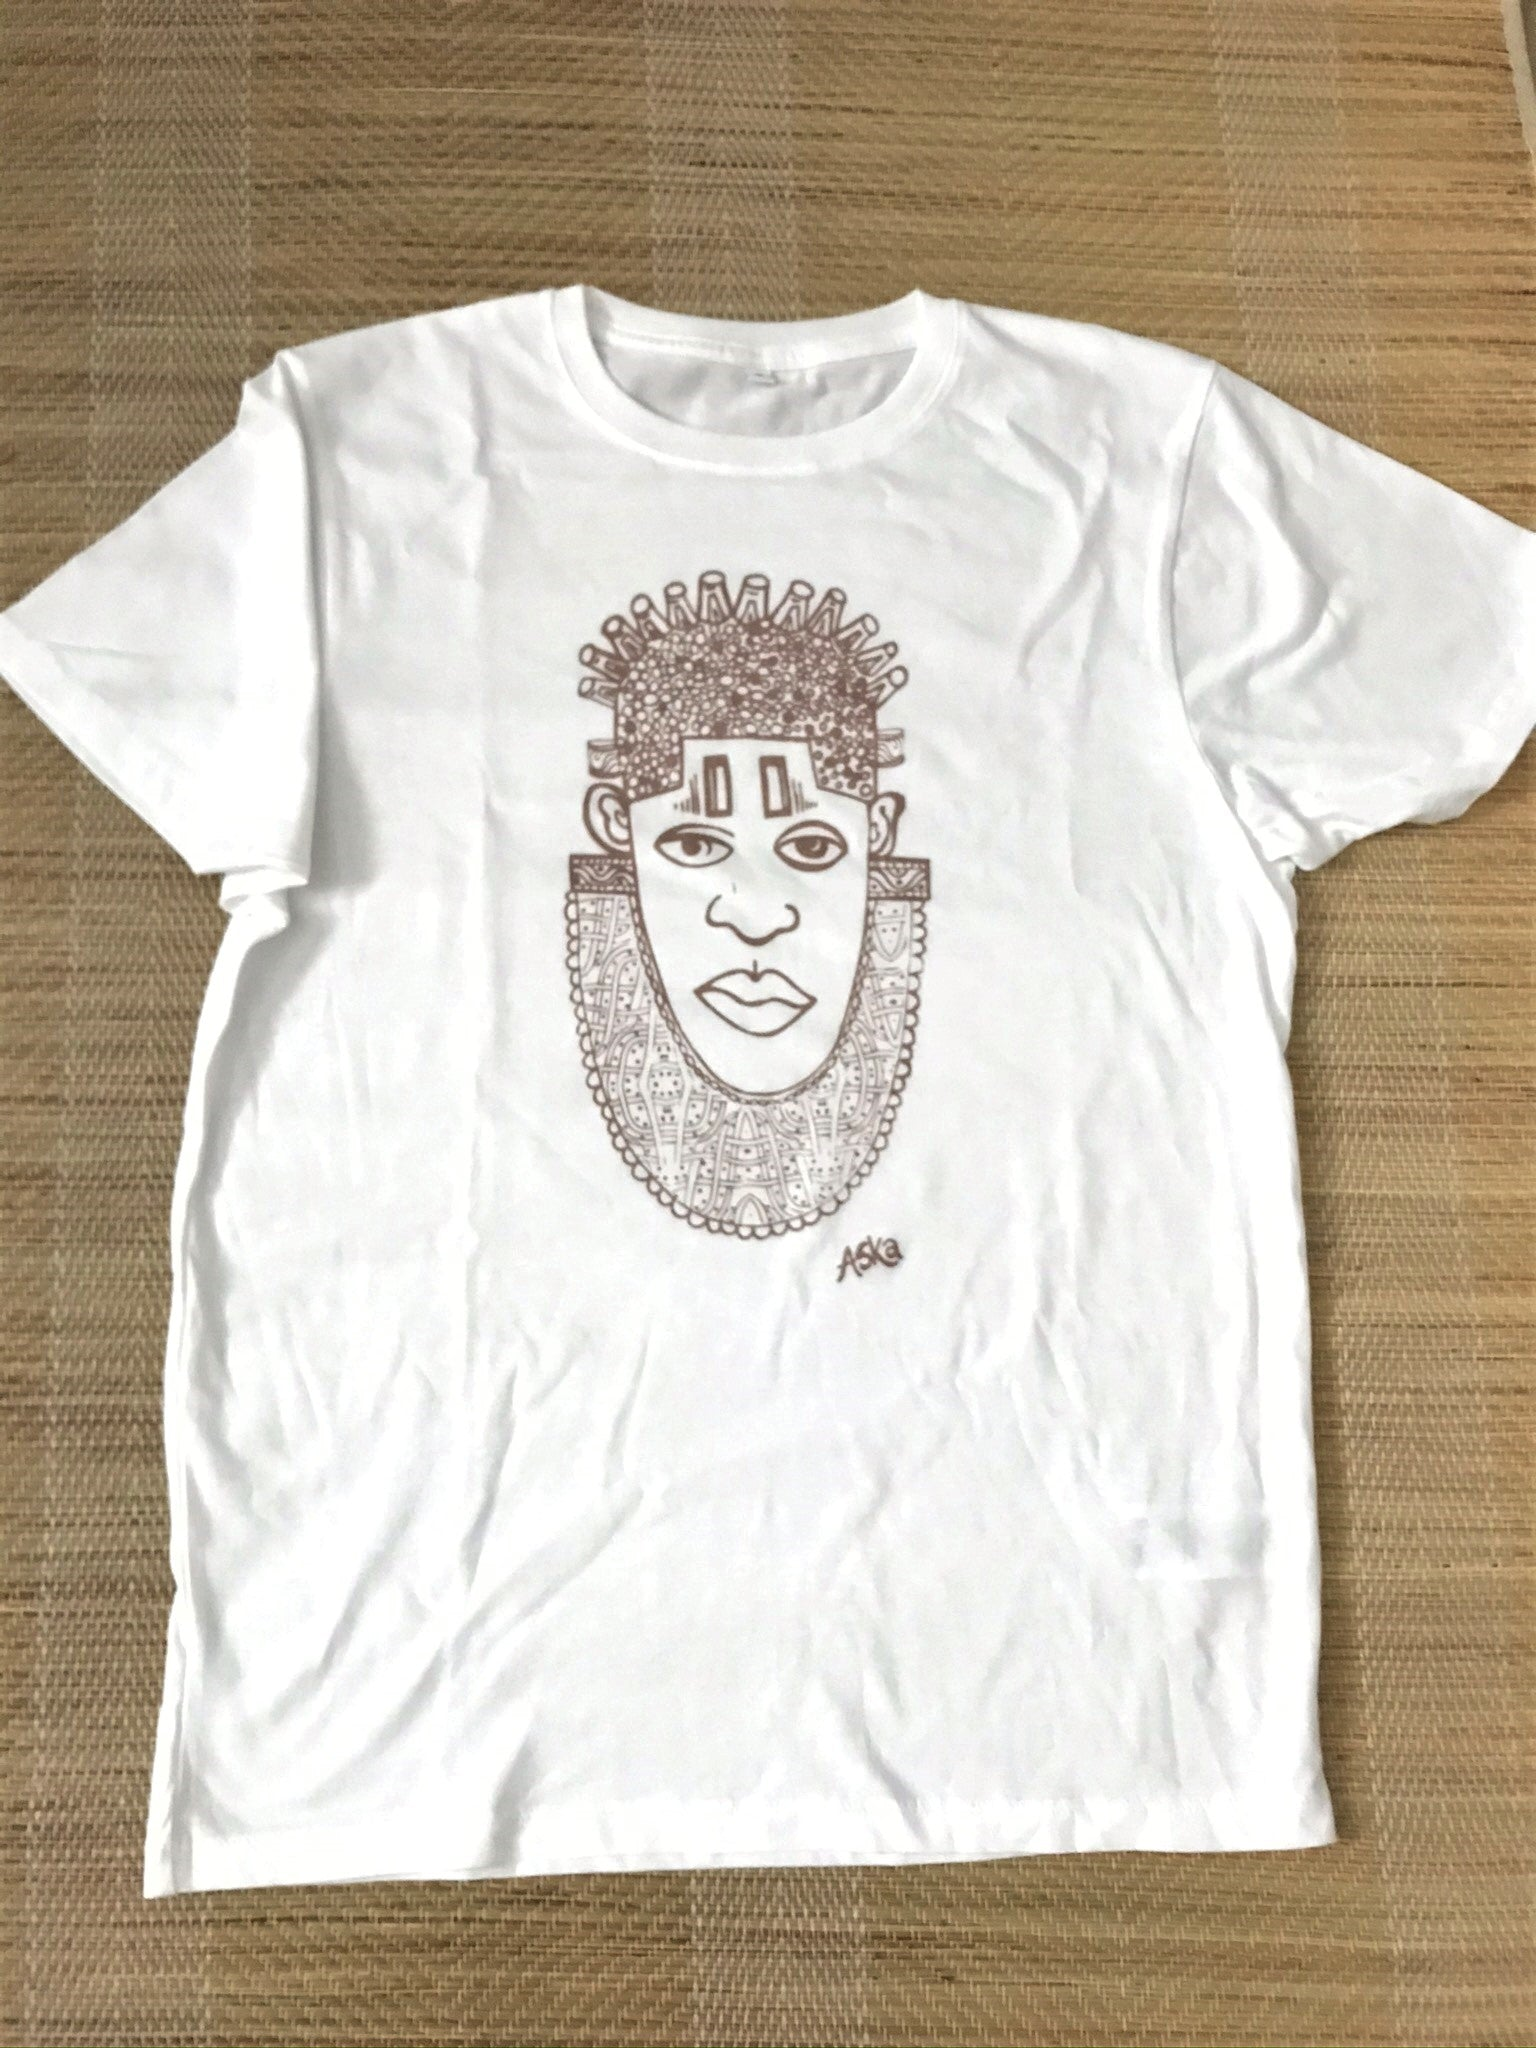 IDIA ART EARTH POSITIVE TEE- ROSEGOLD ON WHITE TEE